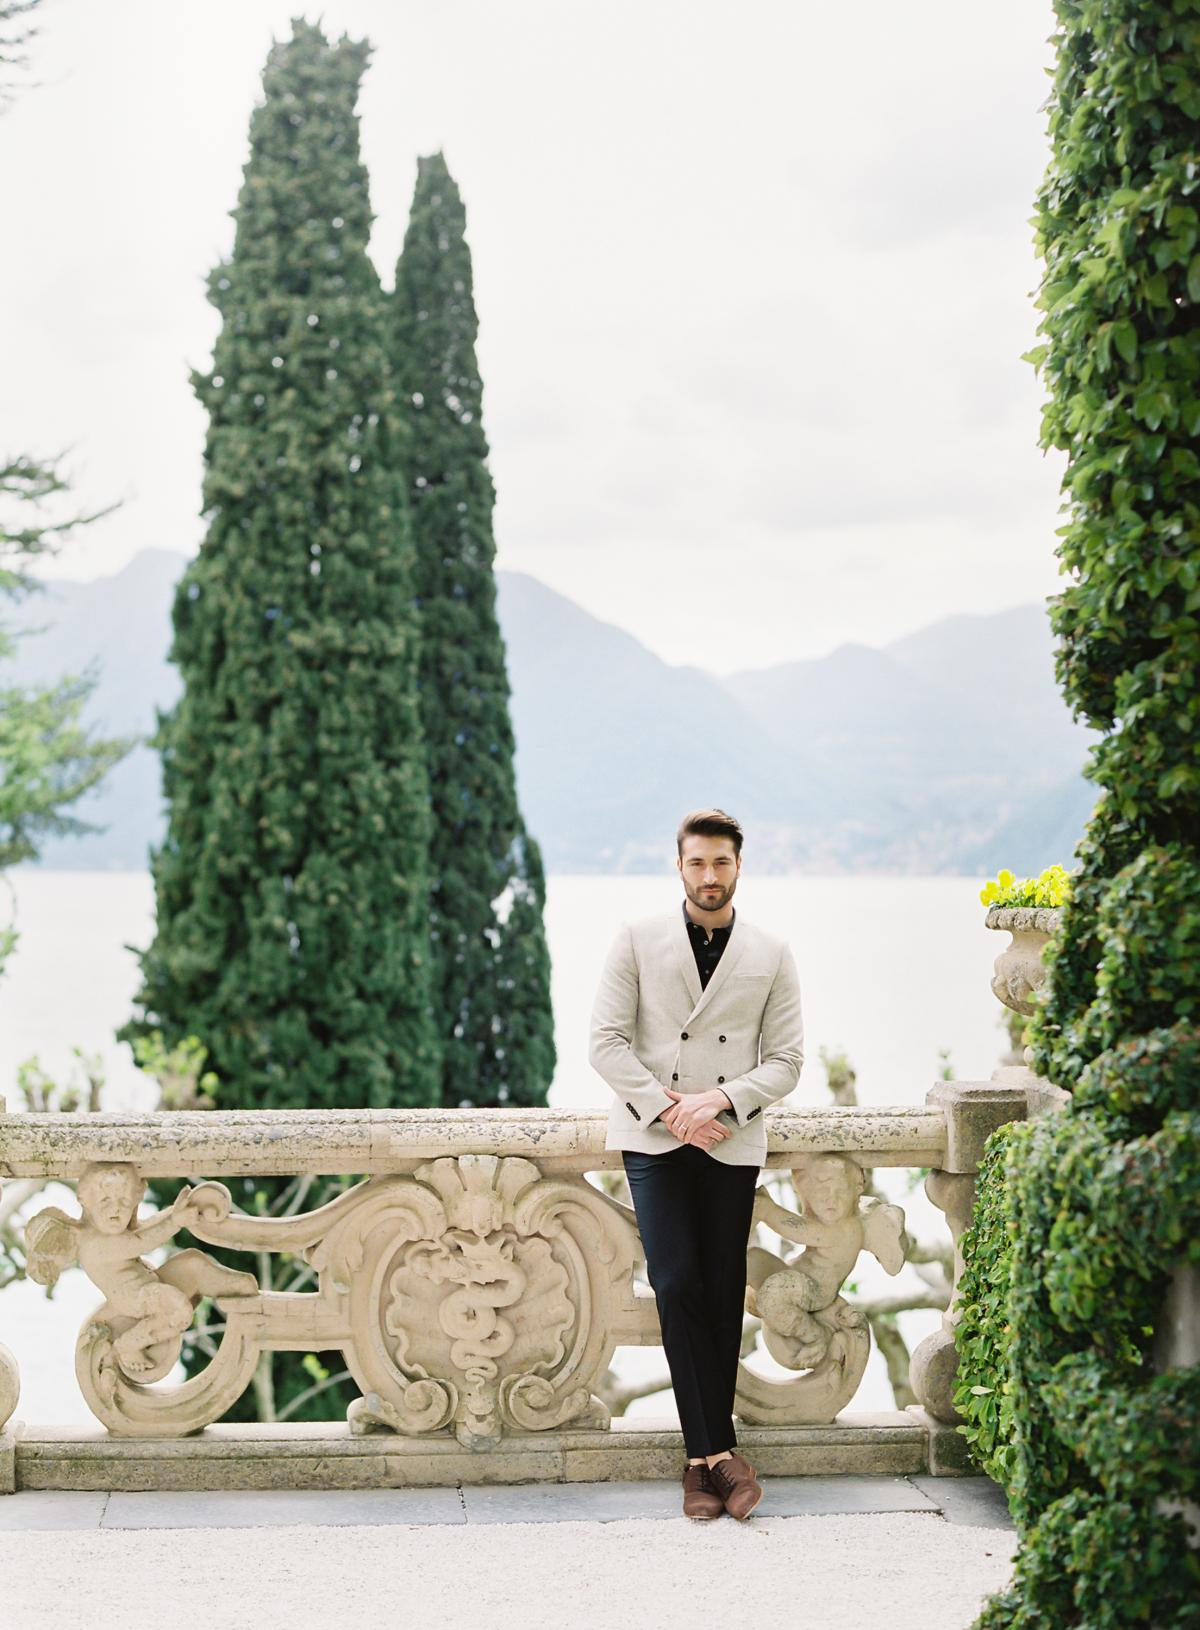 Lake Como Villa Del Balbianello Wedding Omalley Photographers 0010